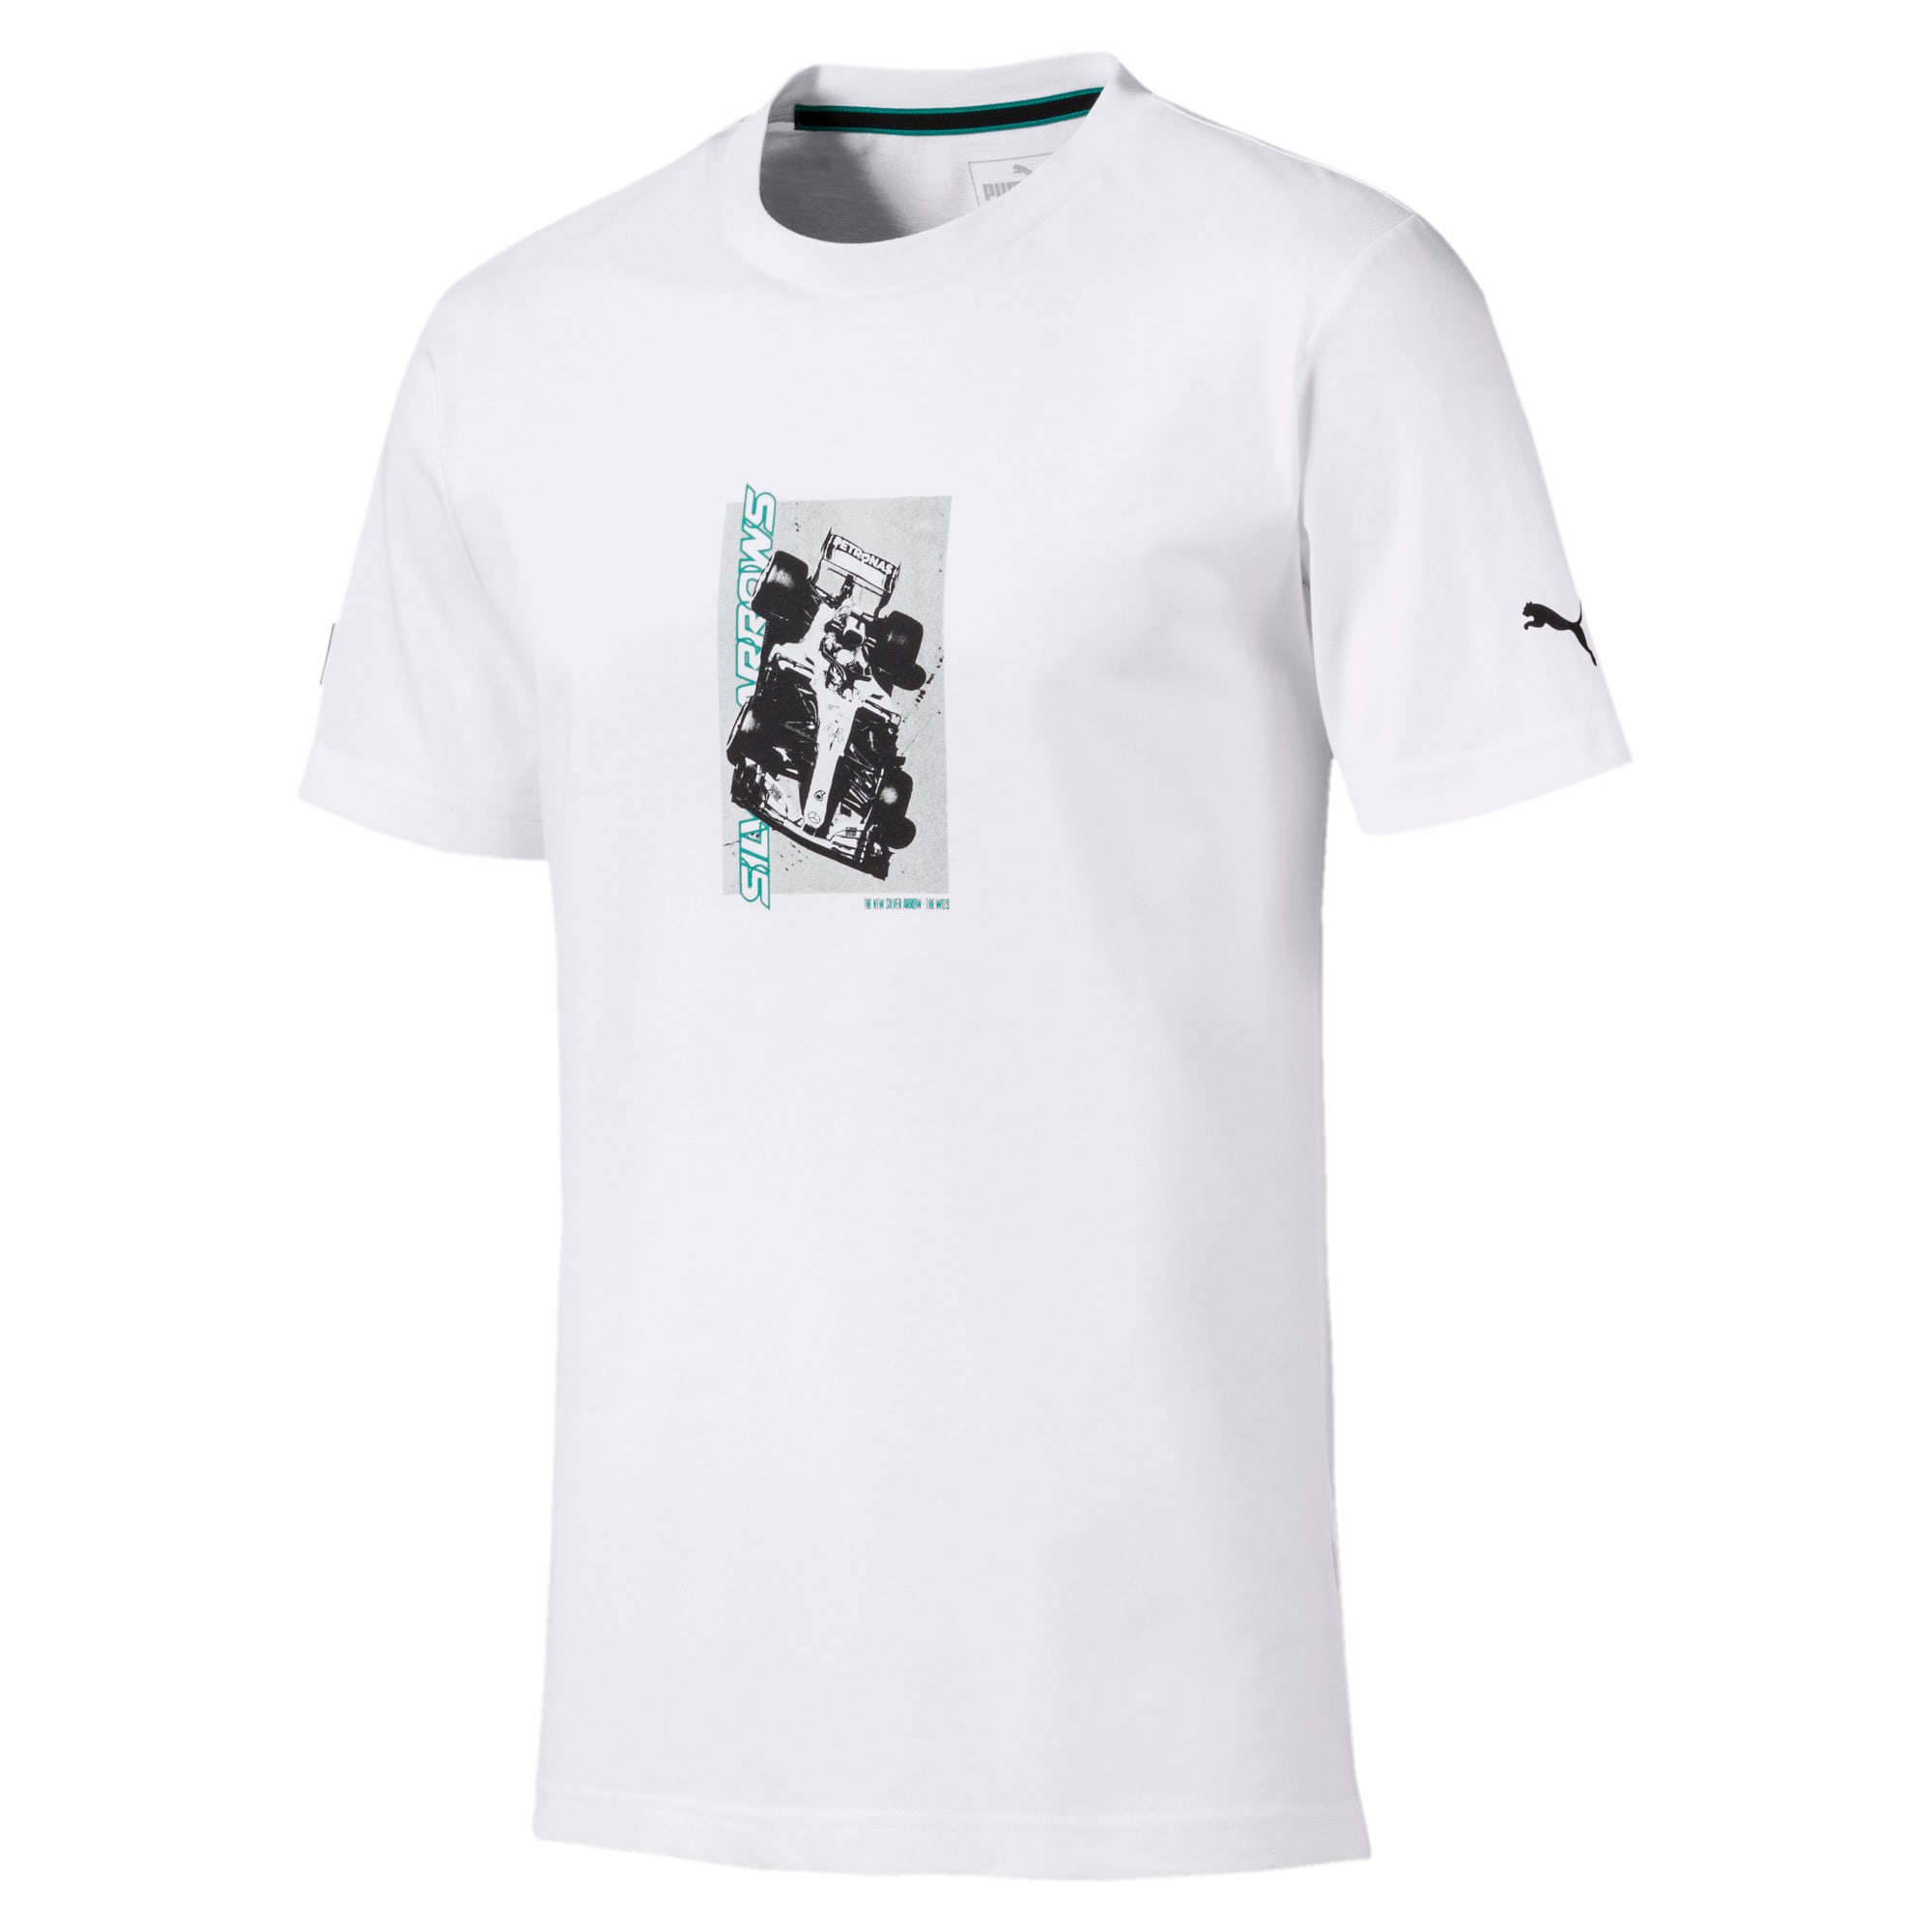 Mercedes AMG Petronas Graphic Men's Tee, Puma White, large